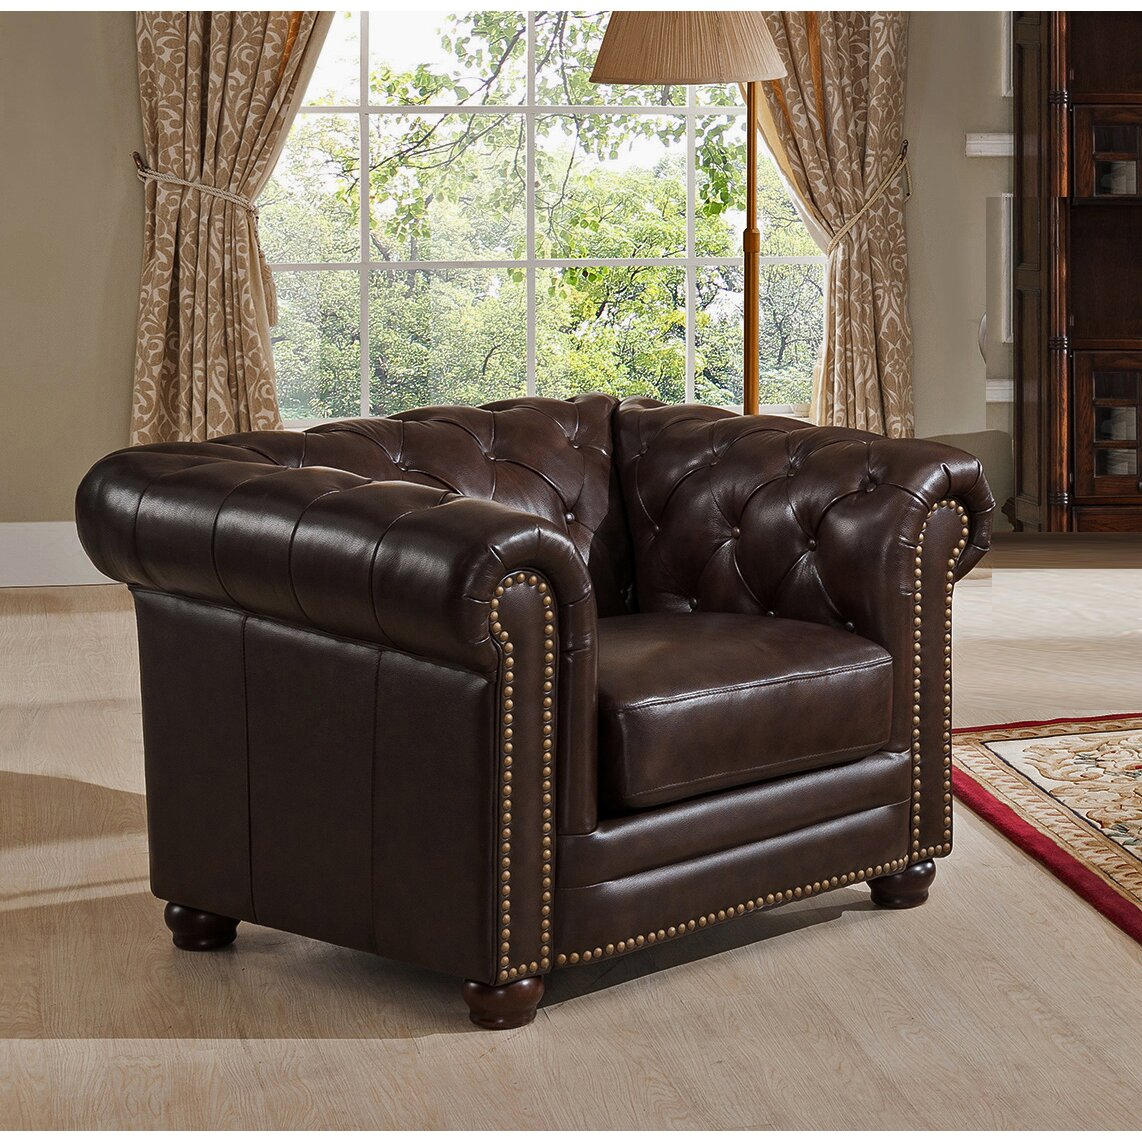 Amax Kensington Top Grain Leather Chesterfield Sofa And For Chesterfield Sofas And Chairs (View 15 of 15)